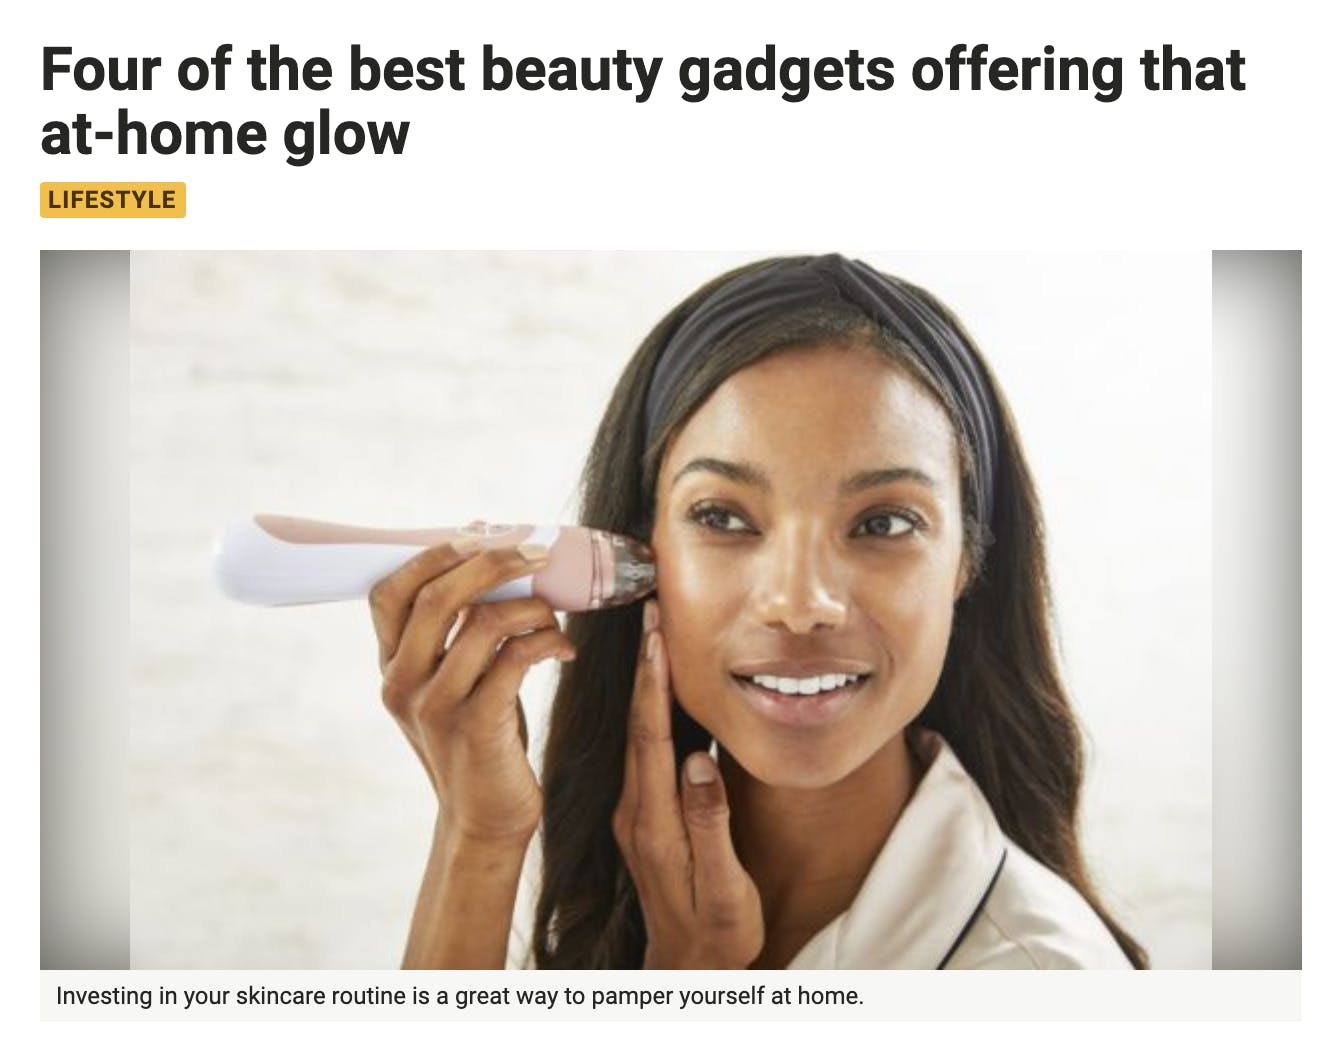 Excerpt from BreakingNew.ie article featuring woman using pink PMD Personal Microderm Elite Pro